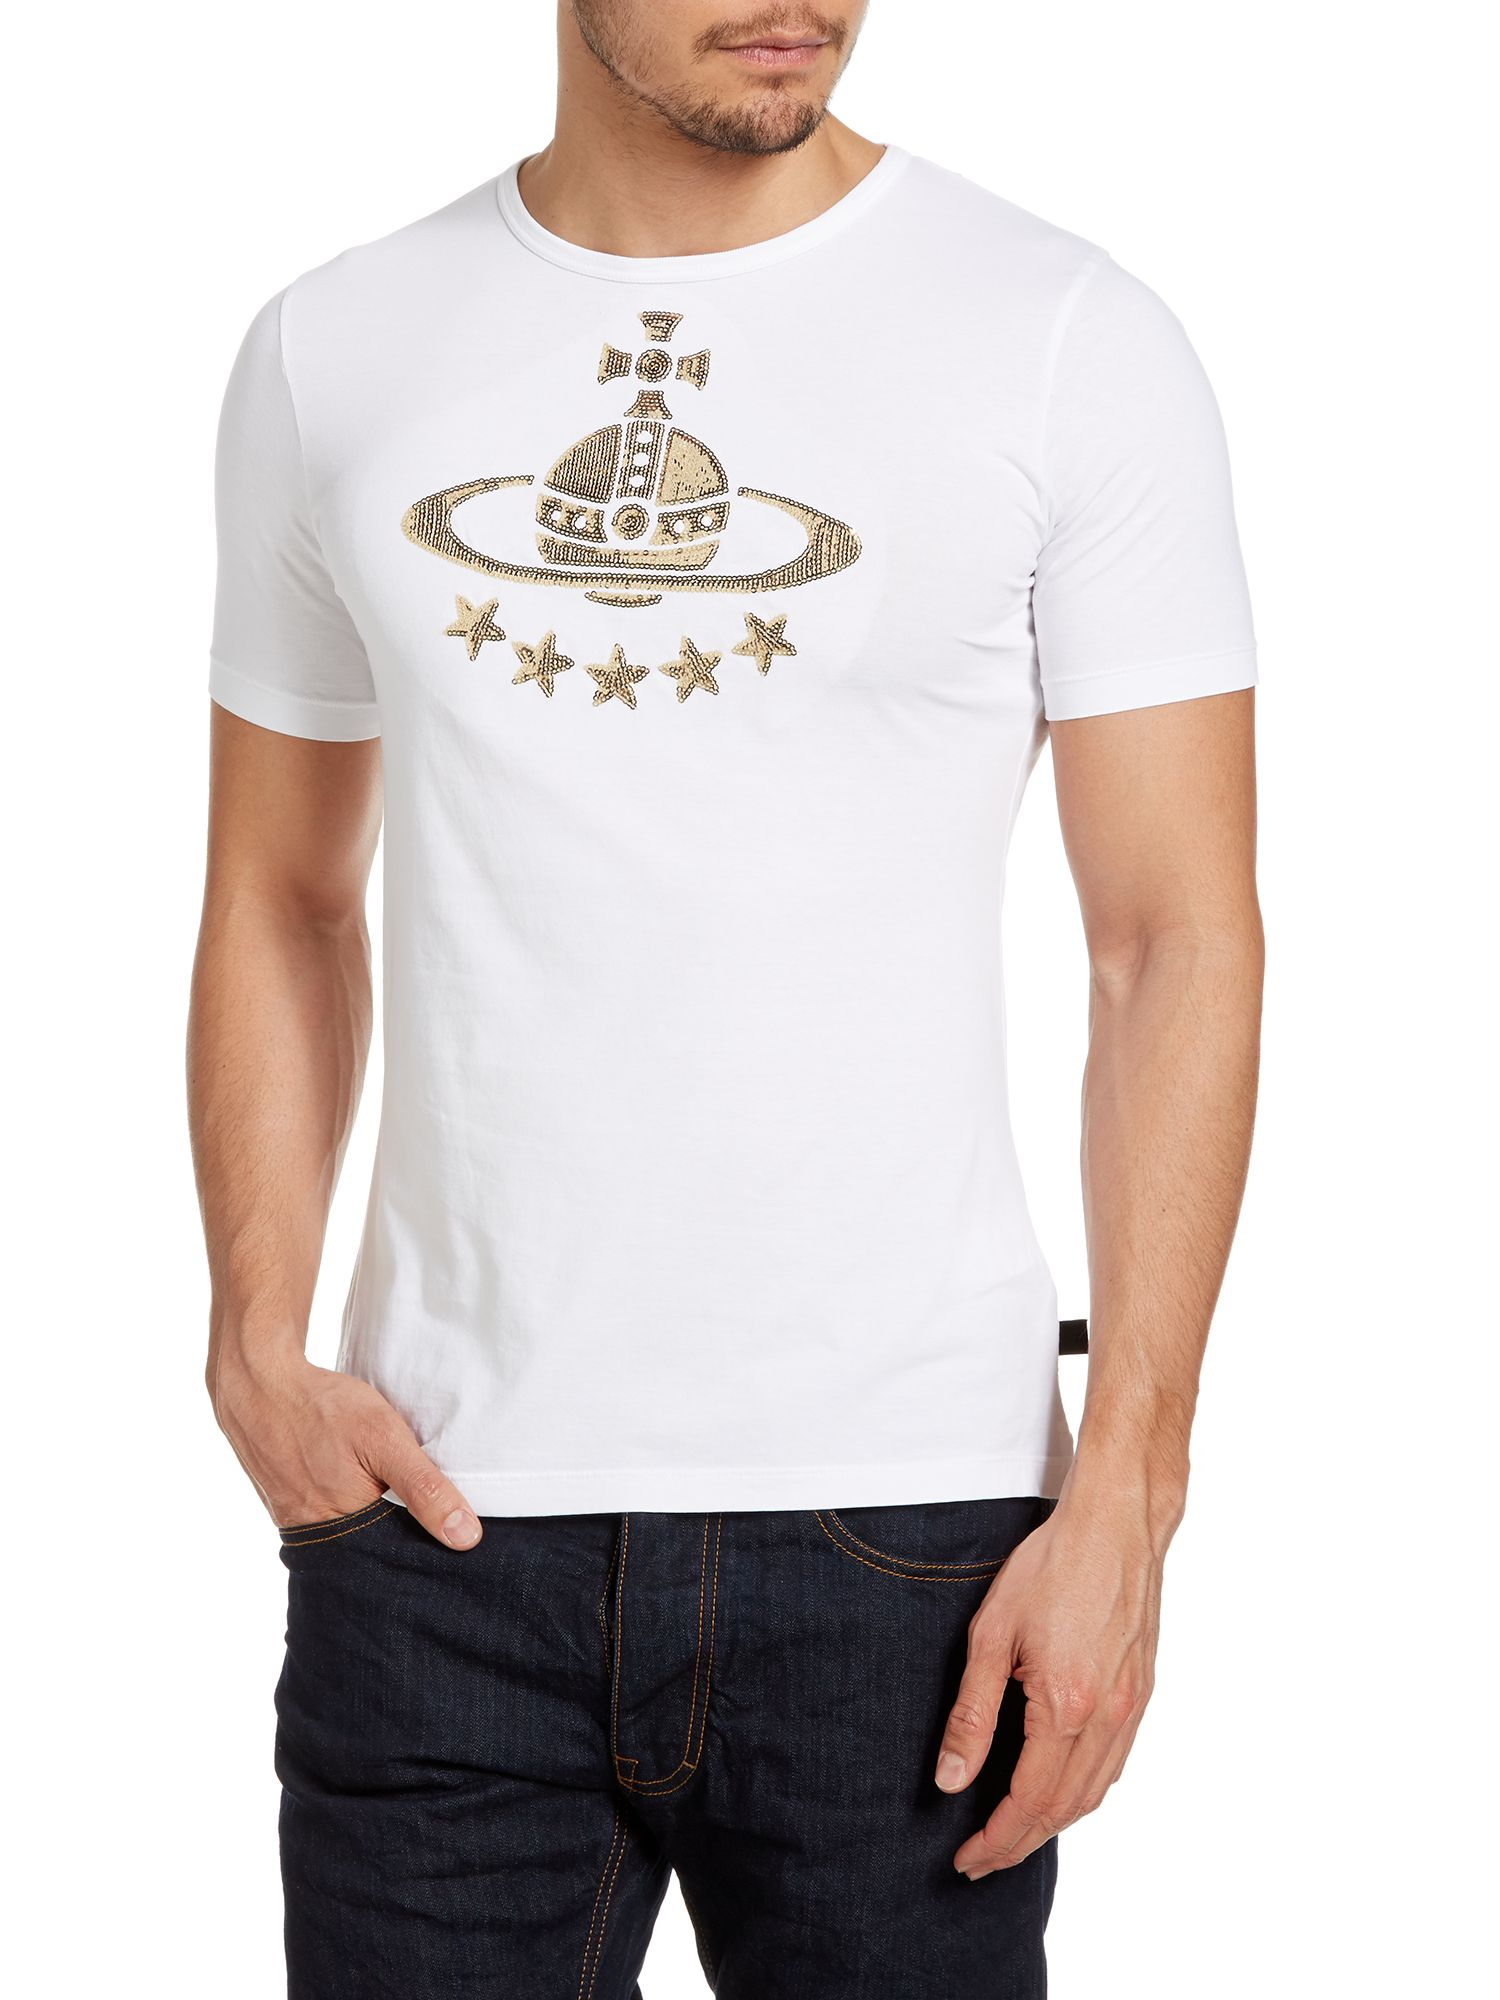 Sequined orb t-shirt